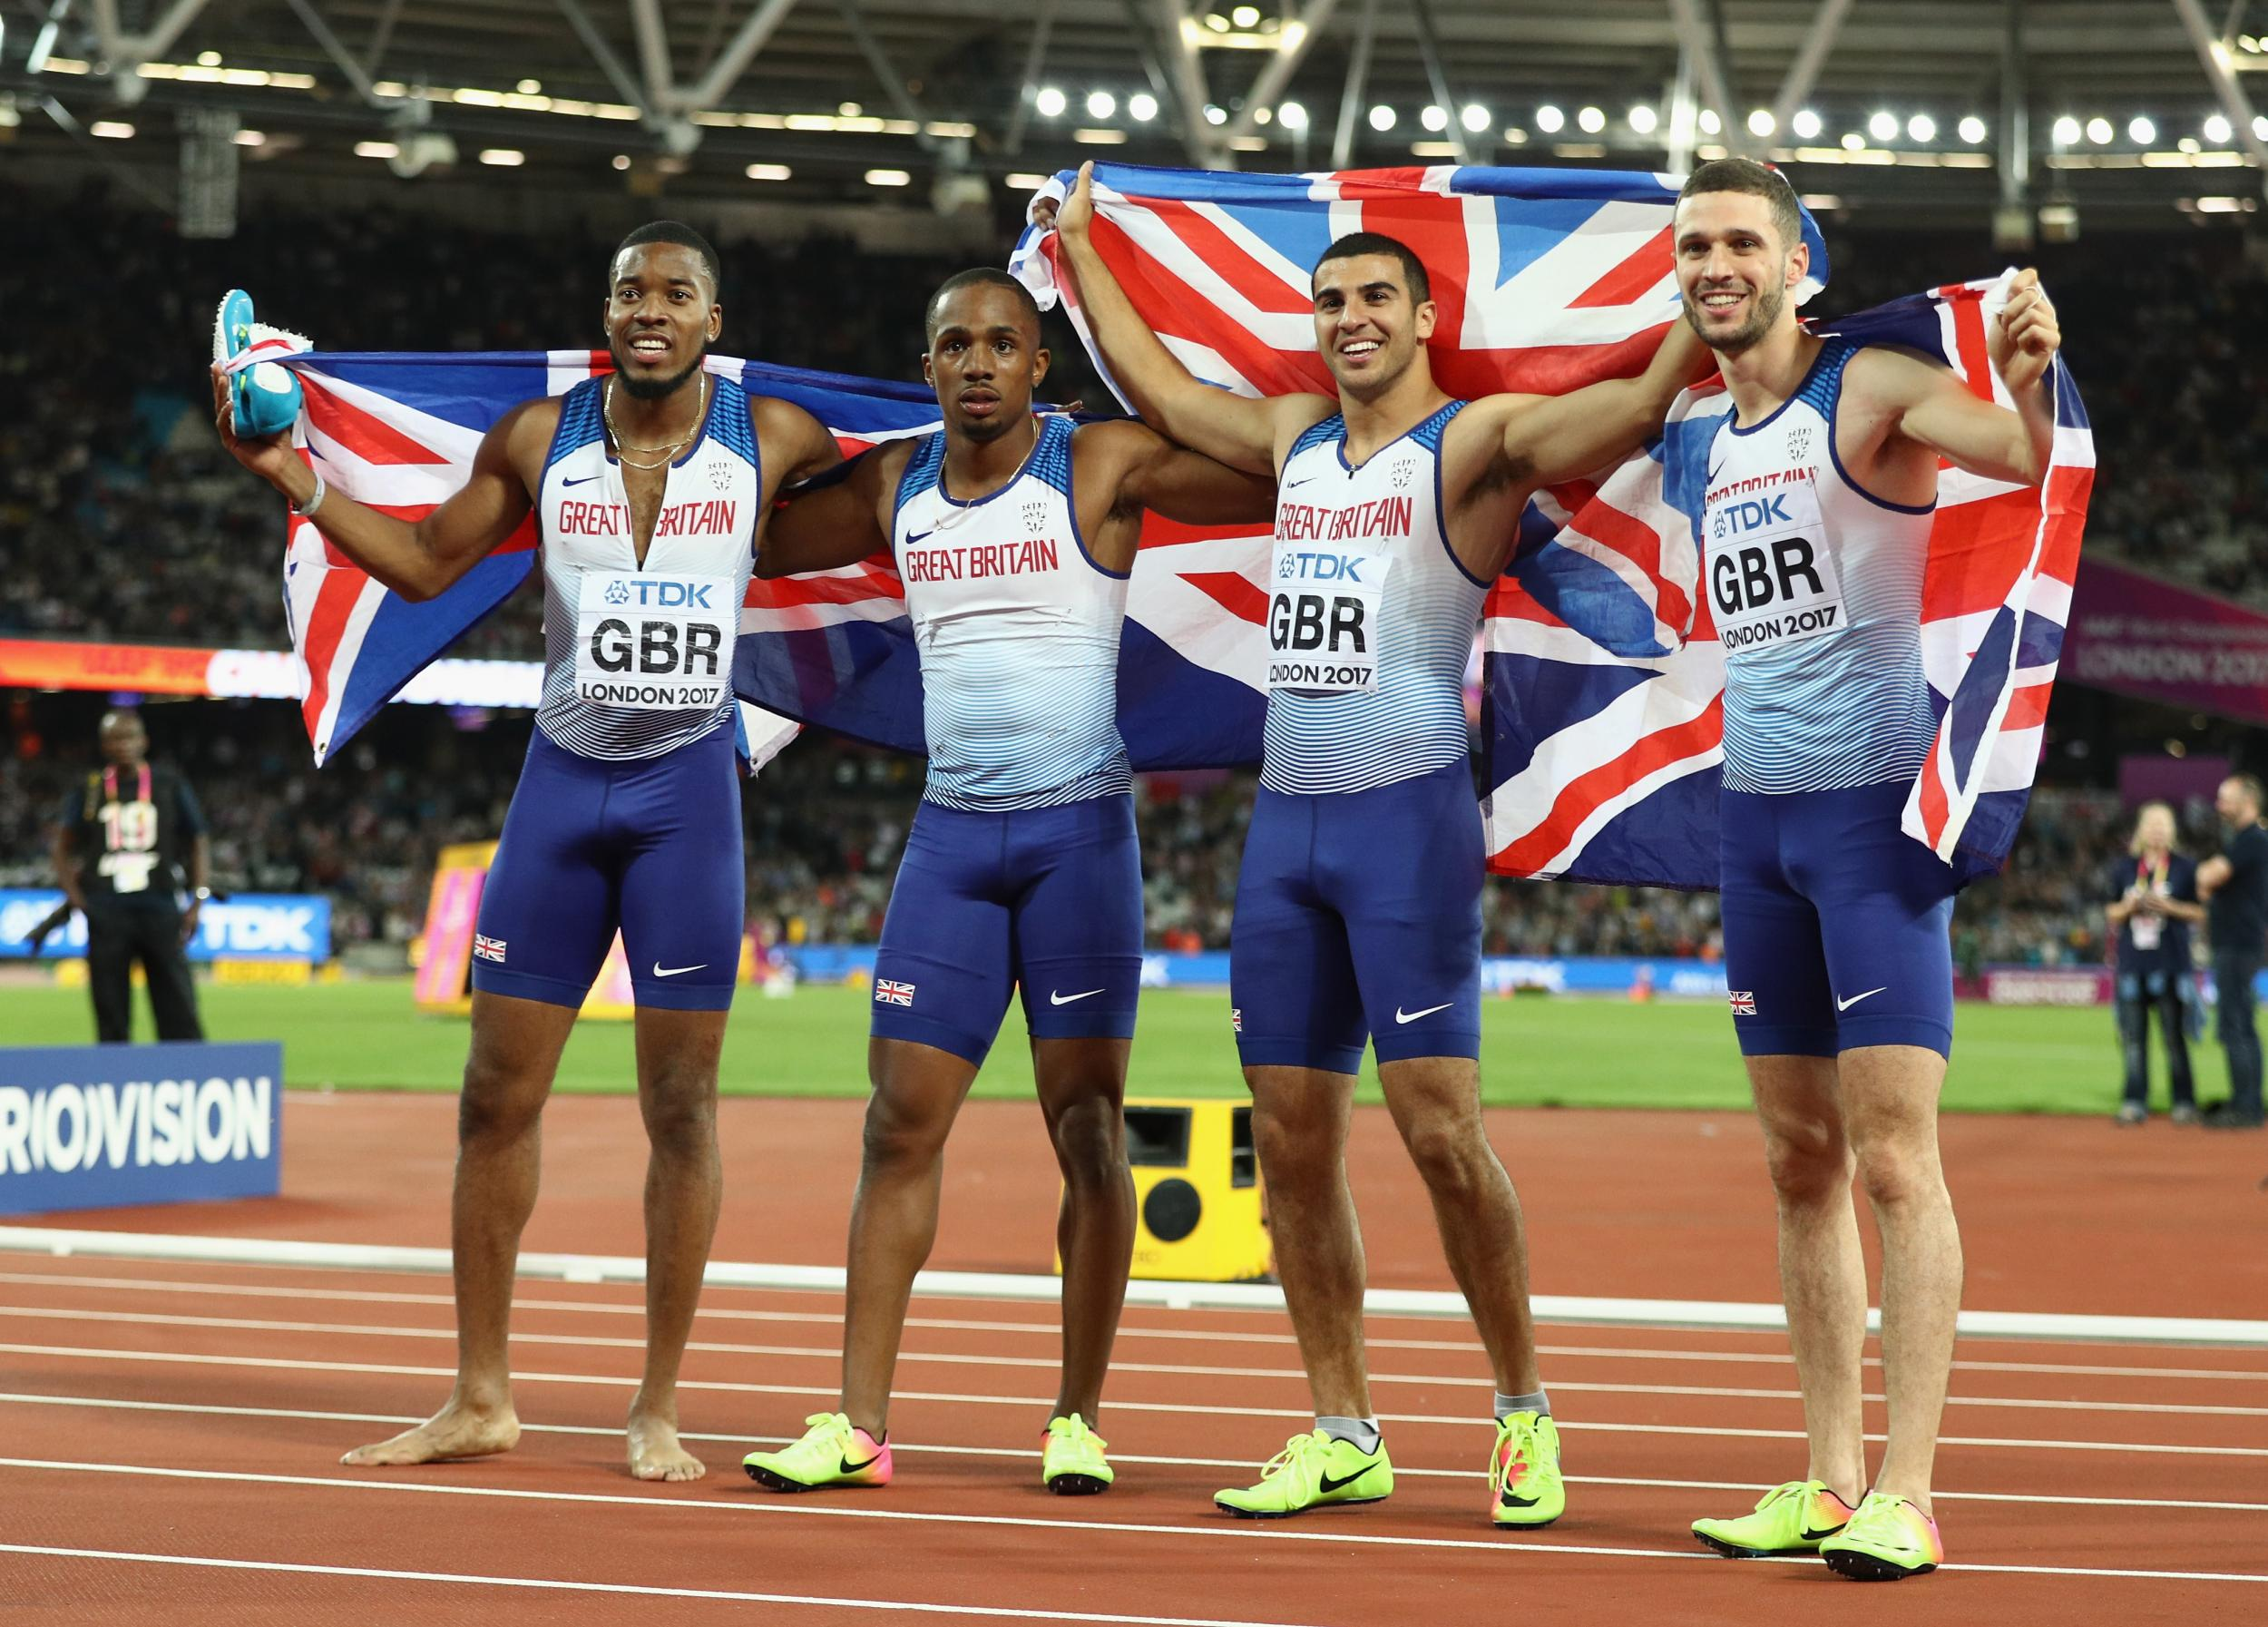 Great Britain storm to surprise gold in men's 4x100m relay ...